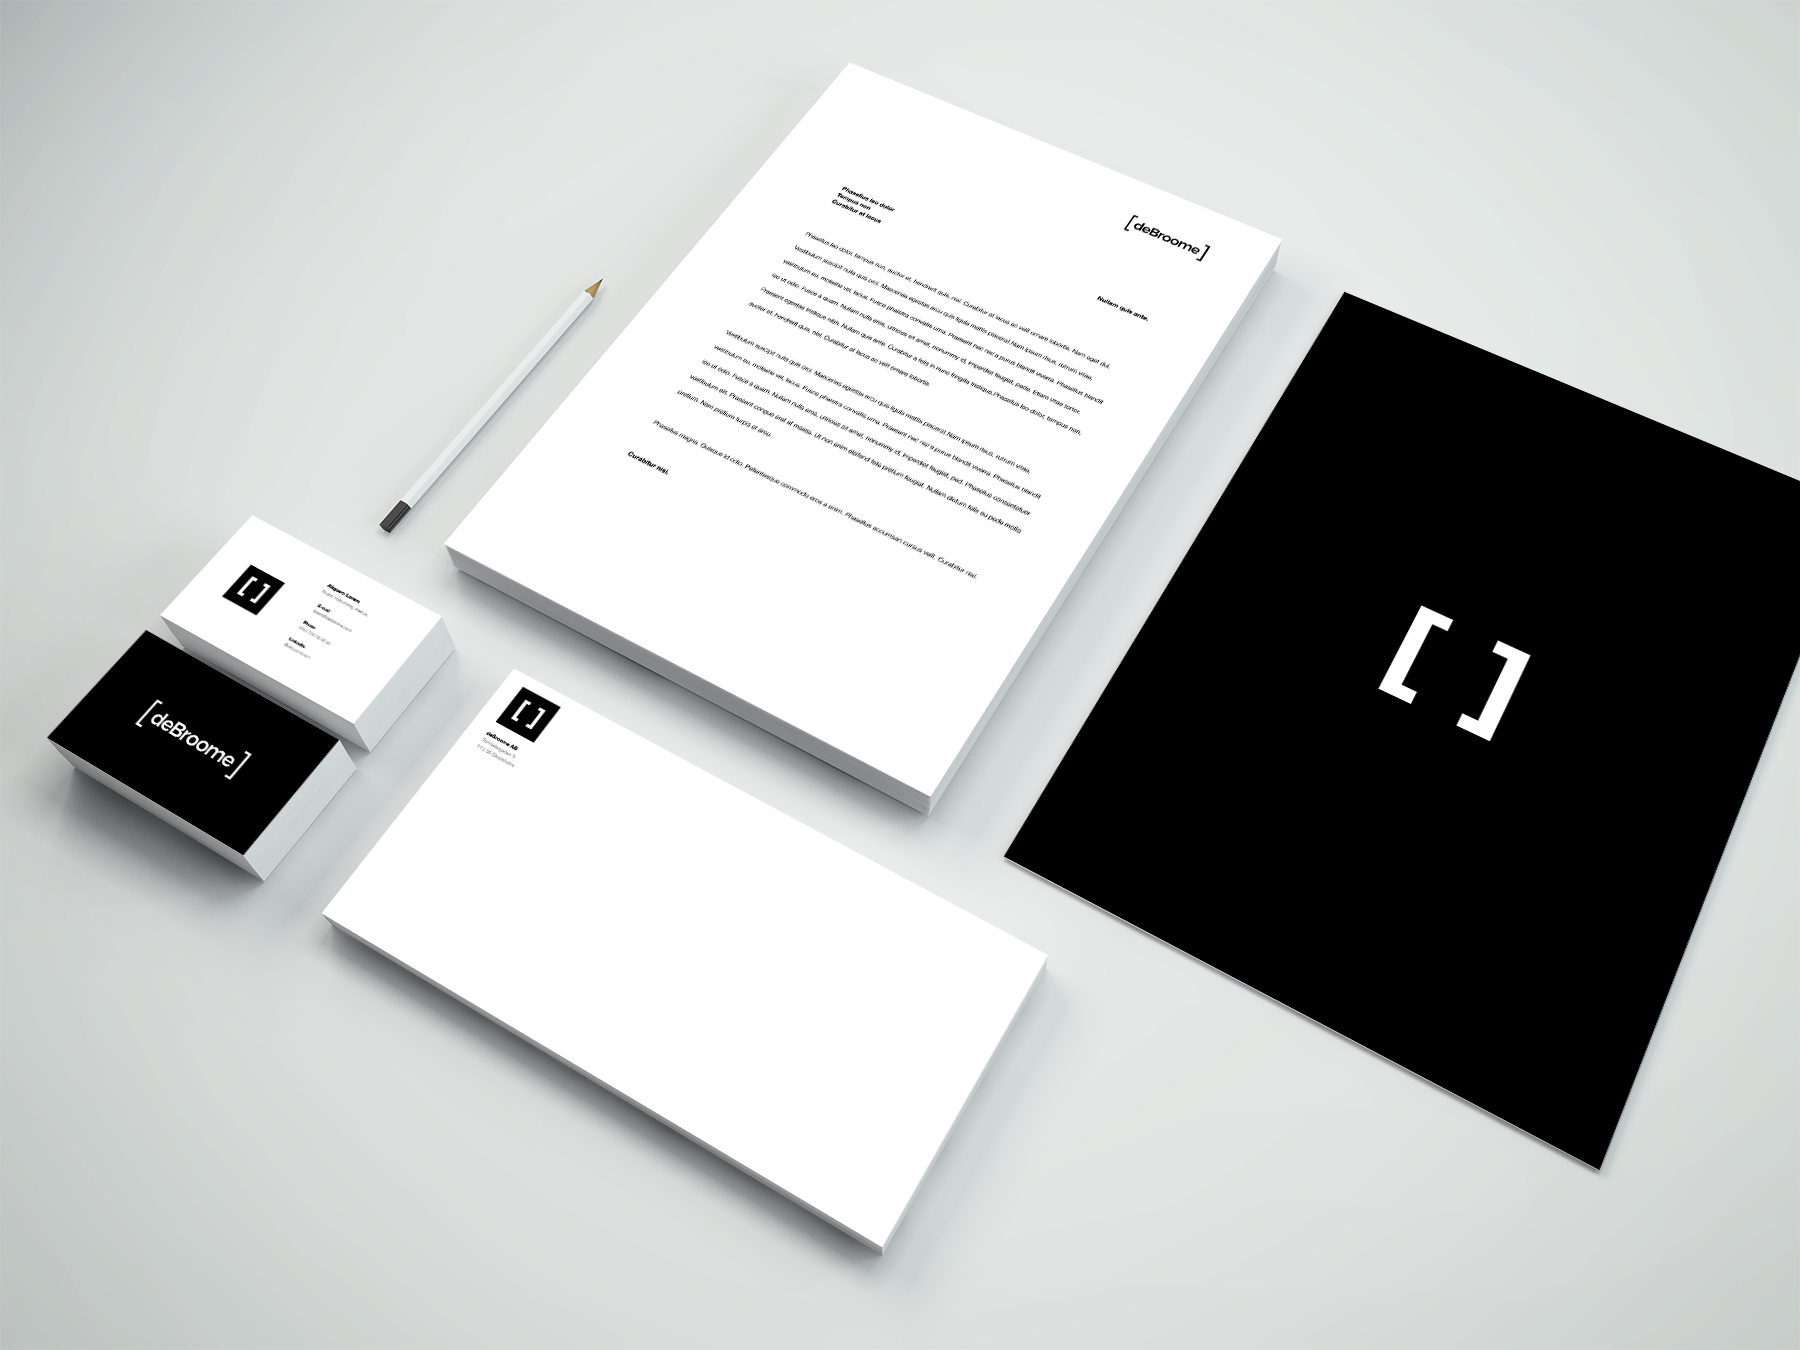 deBroome logos on various documents including envelopes, letters, and business cards